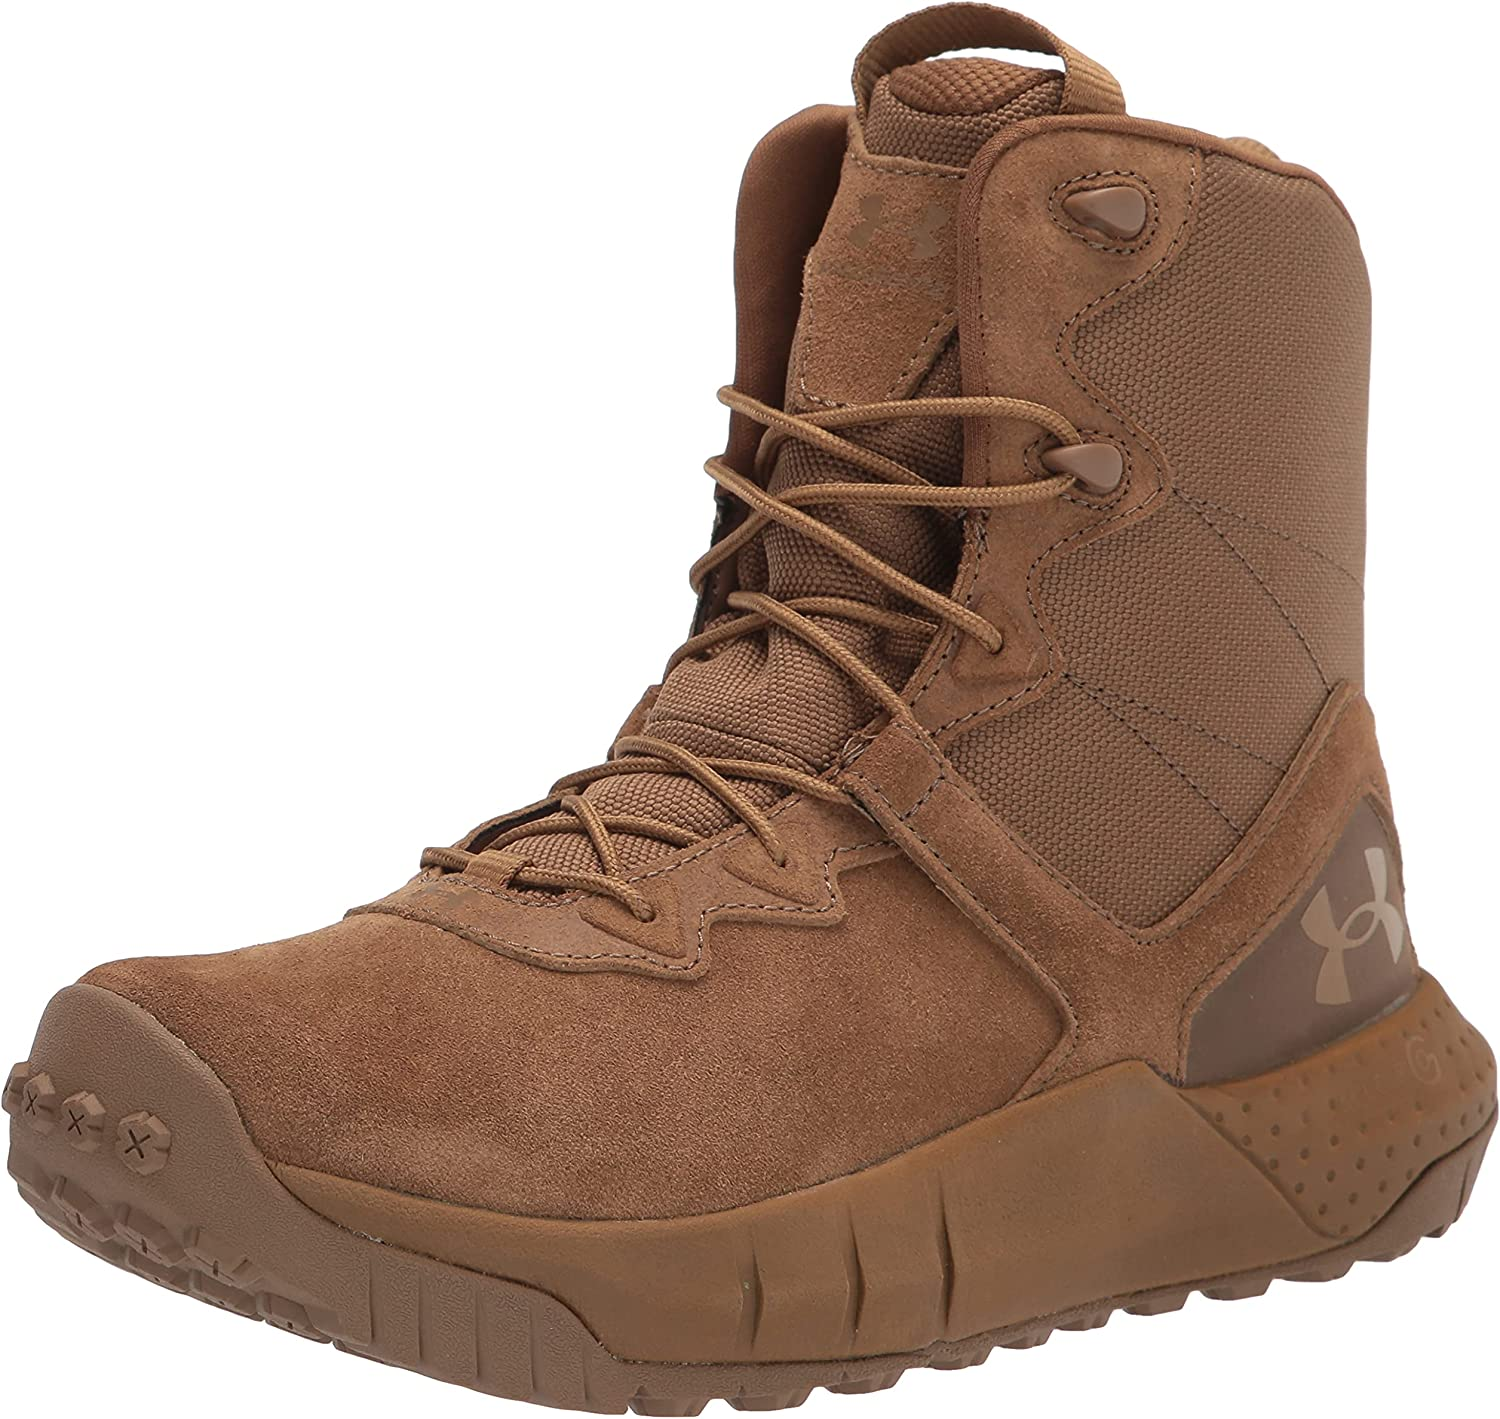 Under Armour Women's Micro G Valsetz Lthr Military and Tactical Boot